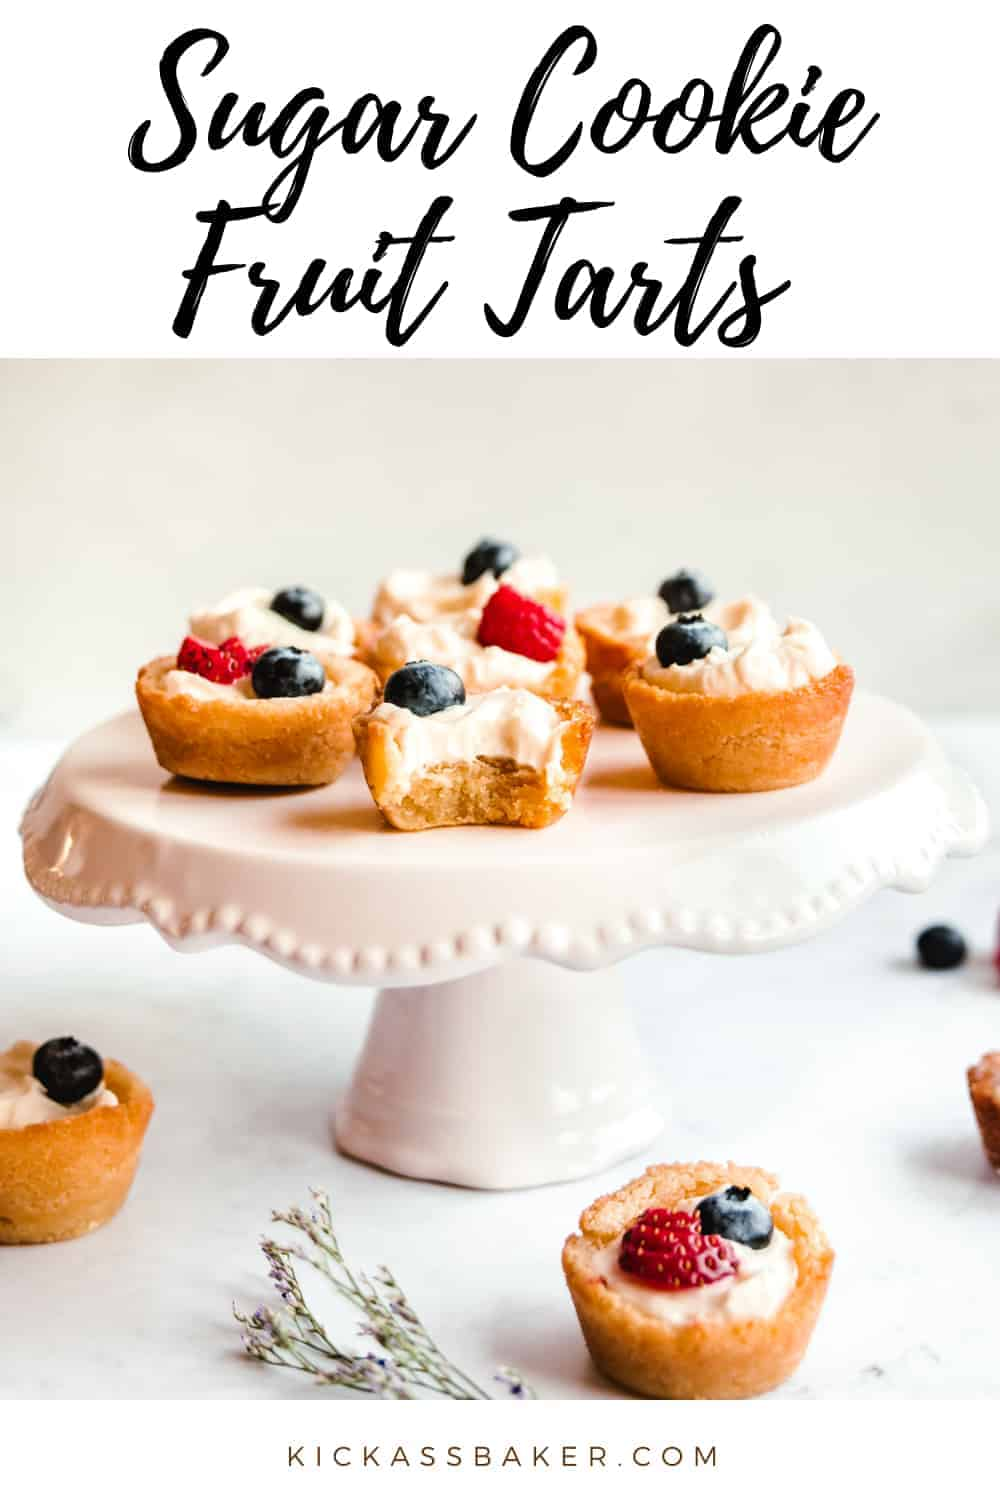 Sugar Cookie Fruit Tarts | kickassbaker.com pin for pinterest with text overlay